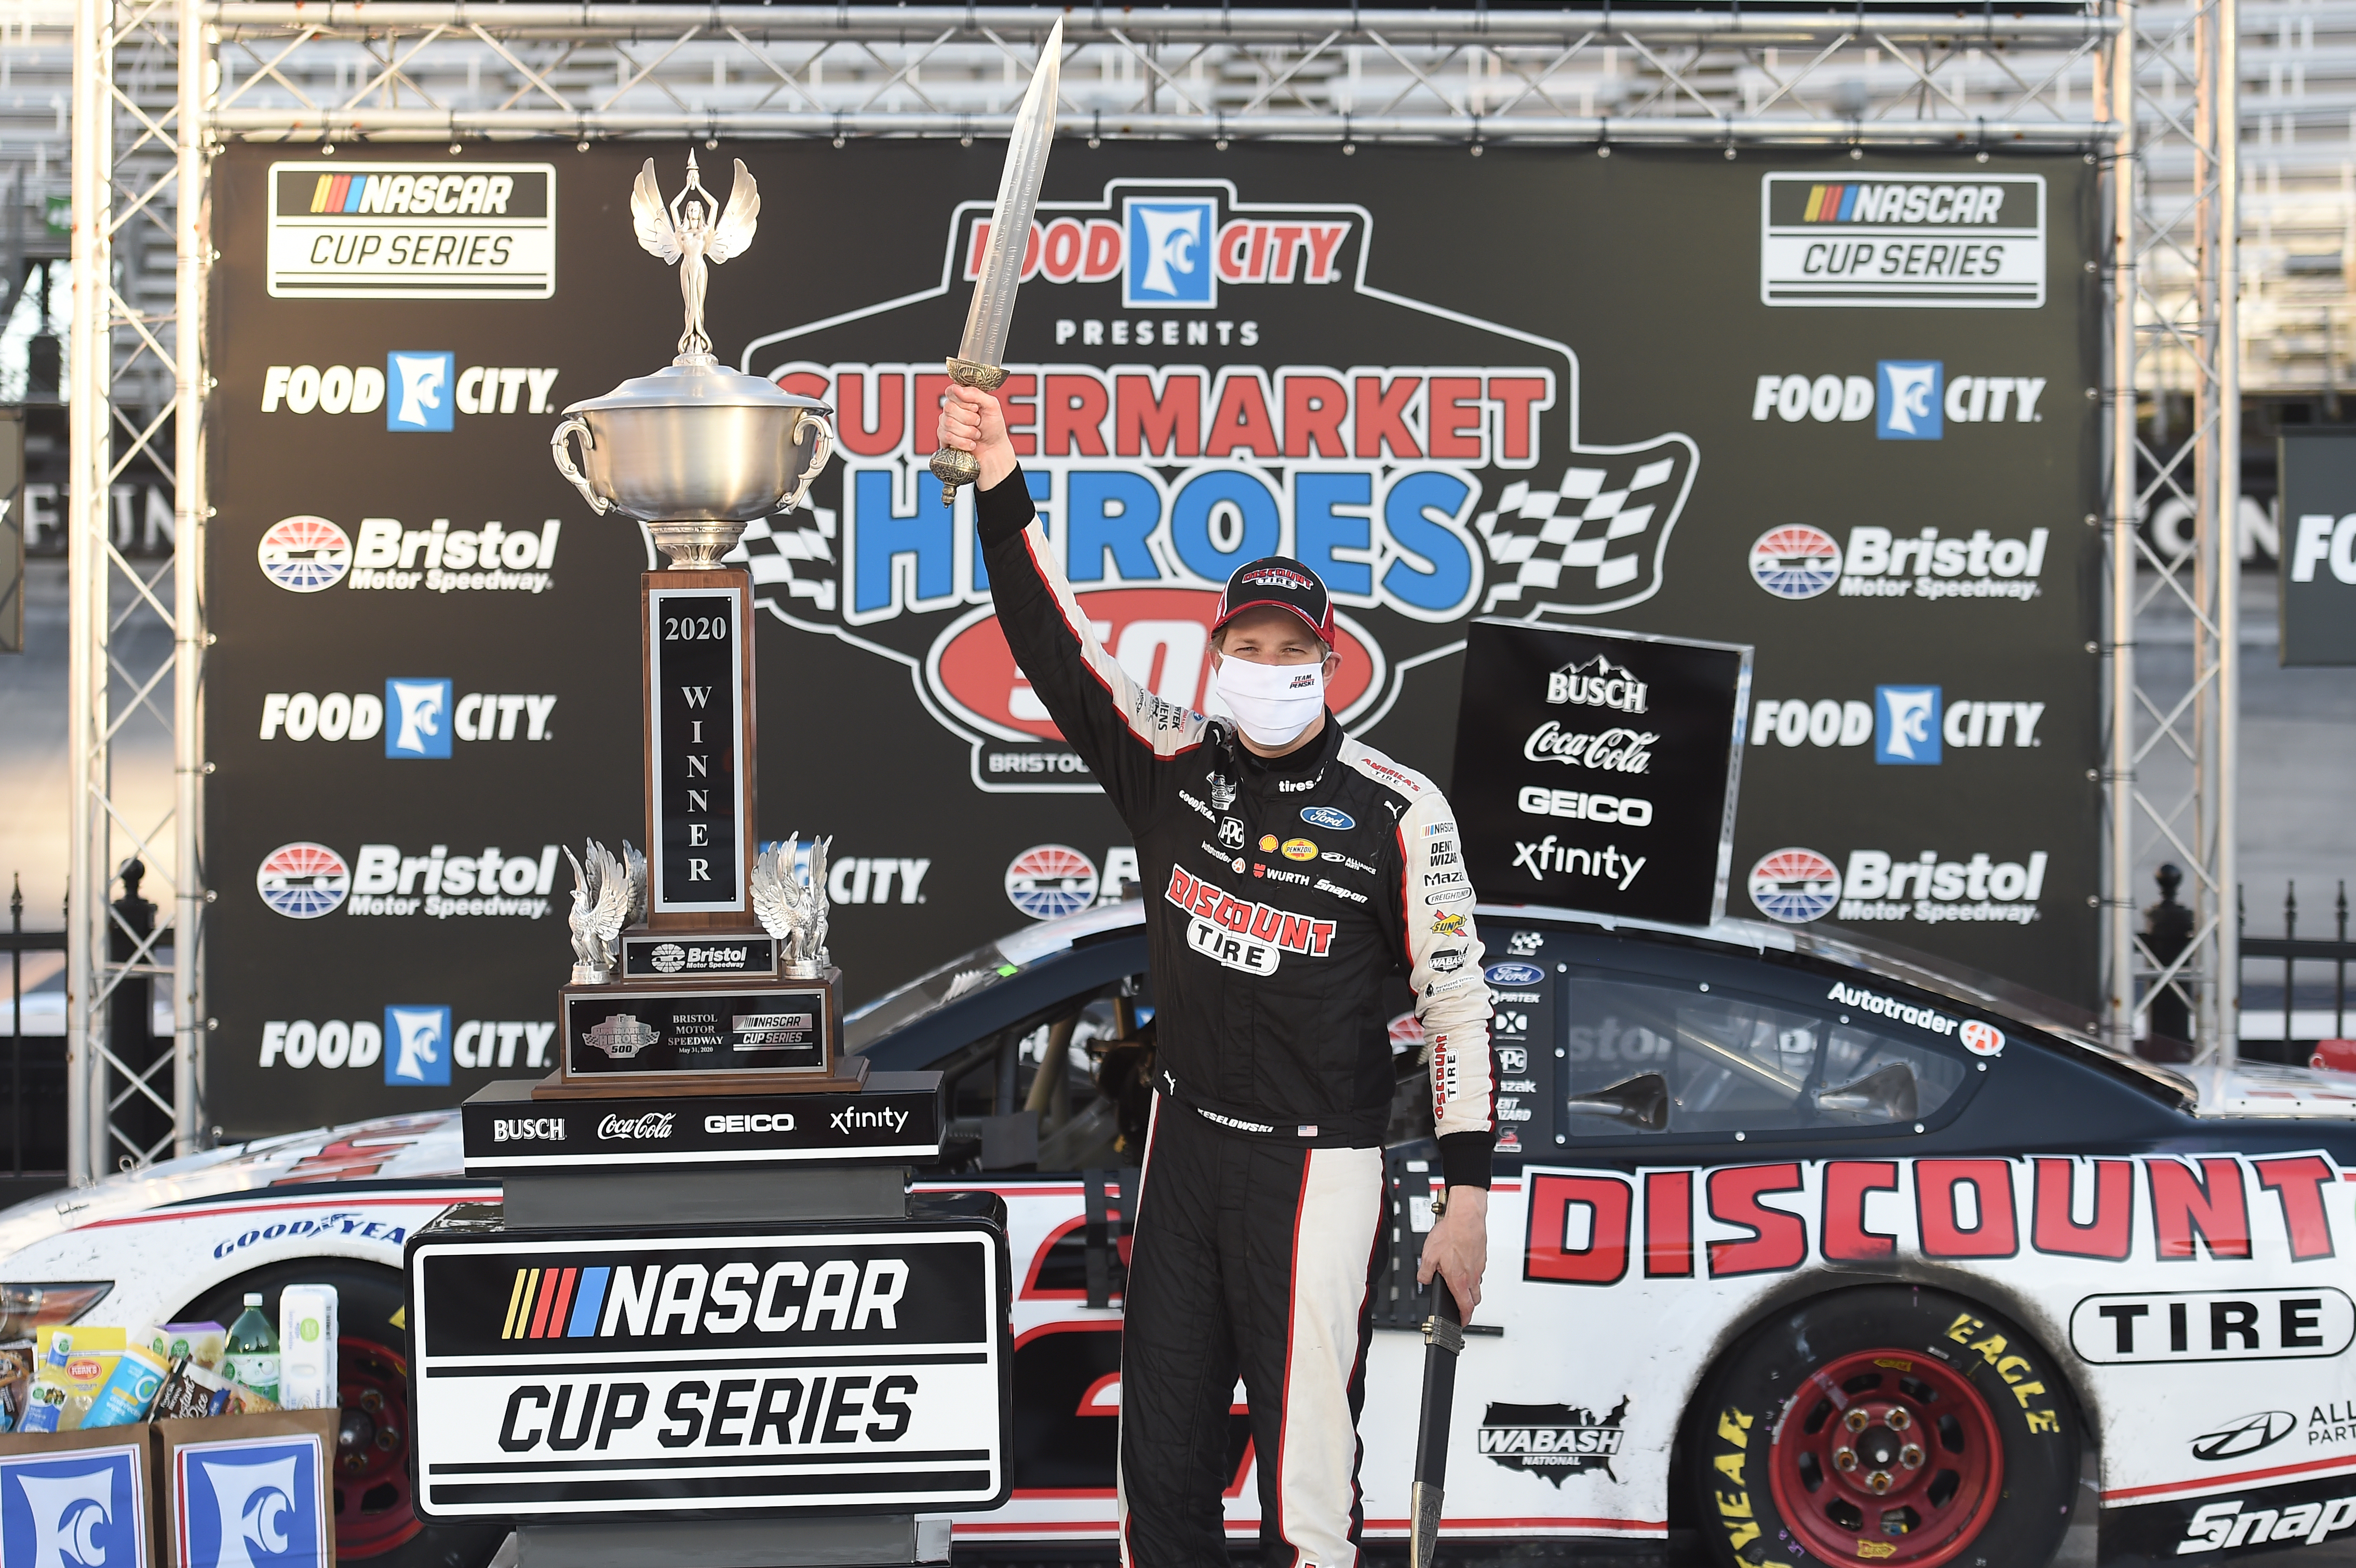 NASCAR Cup Series driver Brad Keselowski celebrates in Victory Lane after winning the NASCAR Cup Series Food City presents the Supermarket Heroes 500